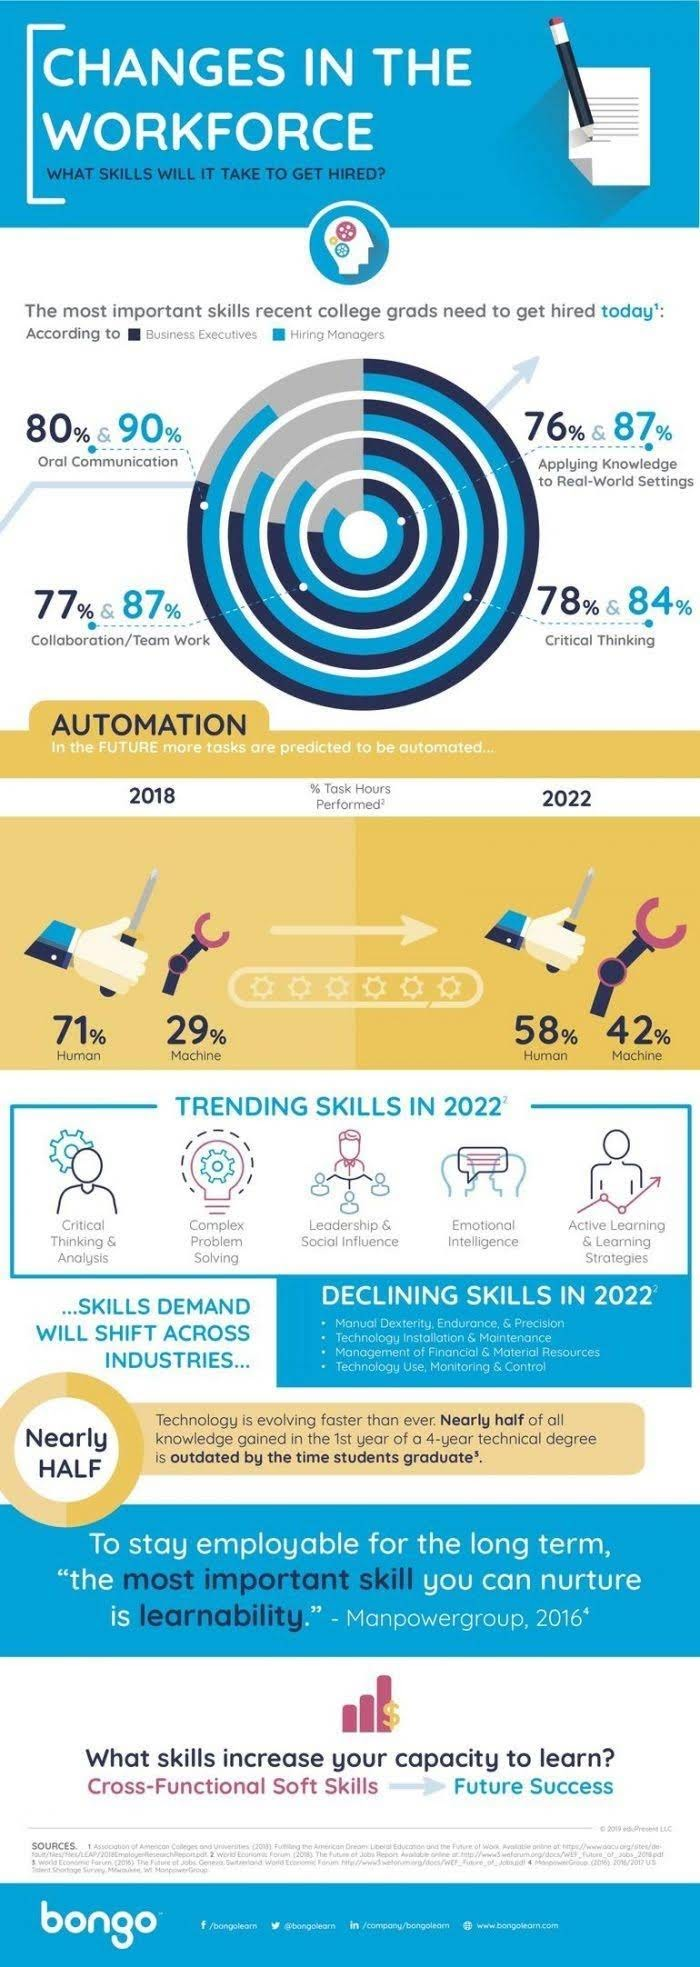 Changes in the Workforce #infographic